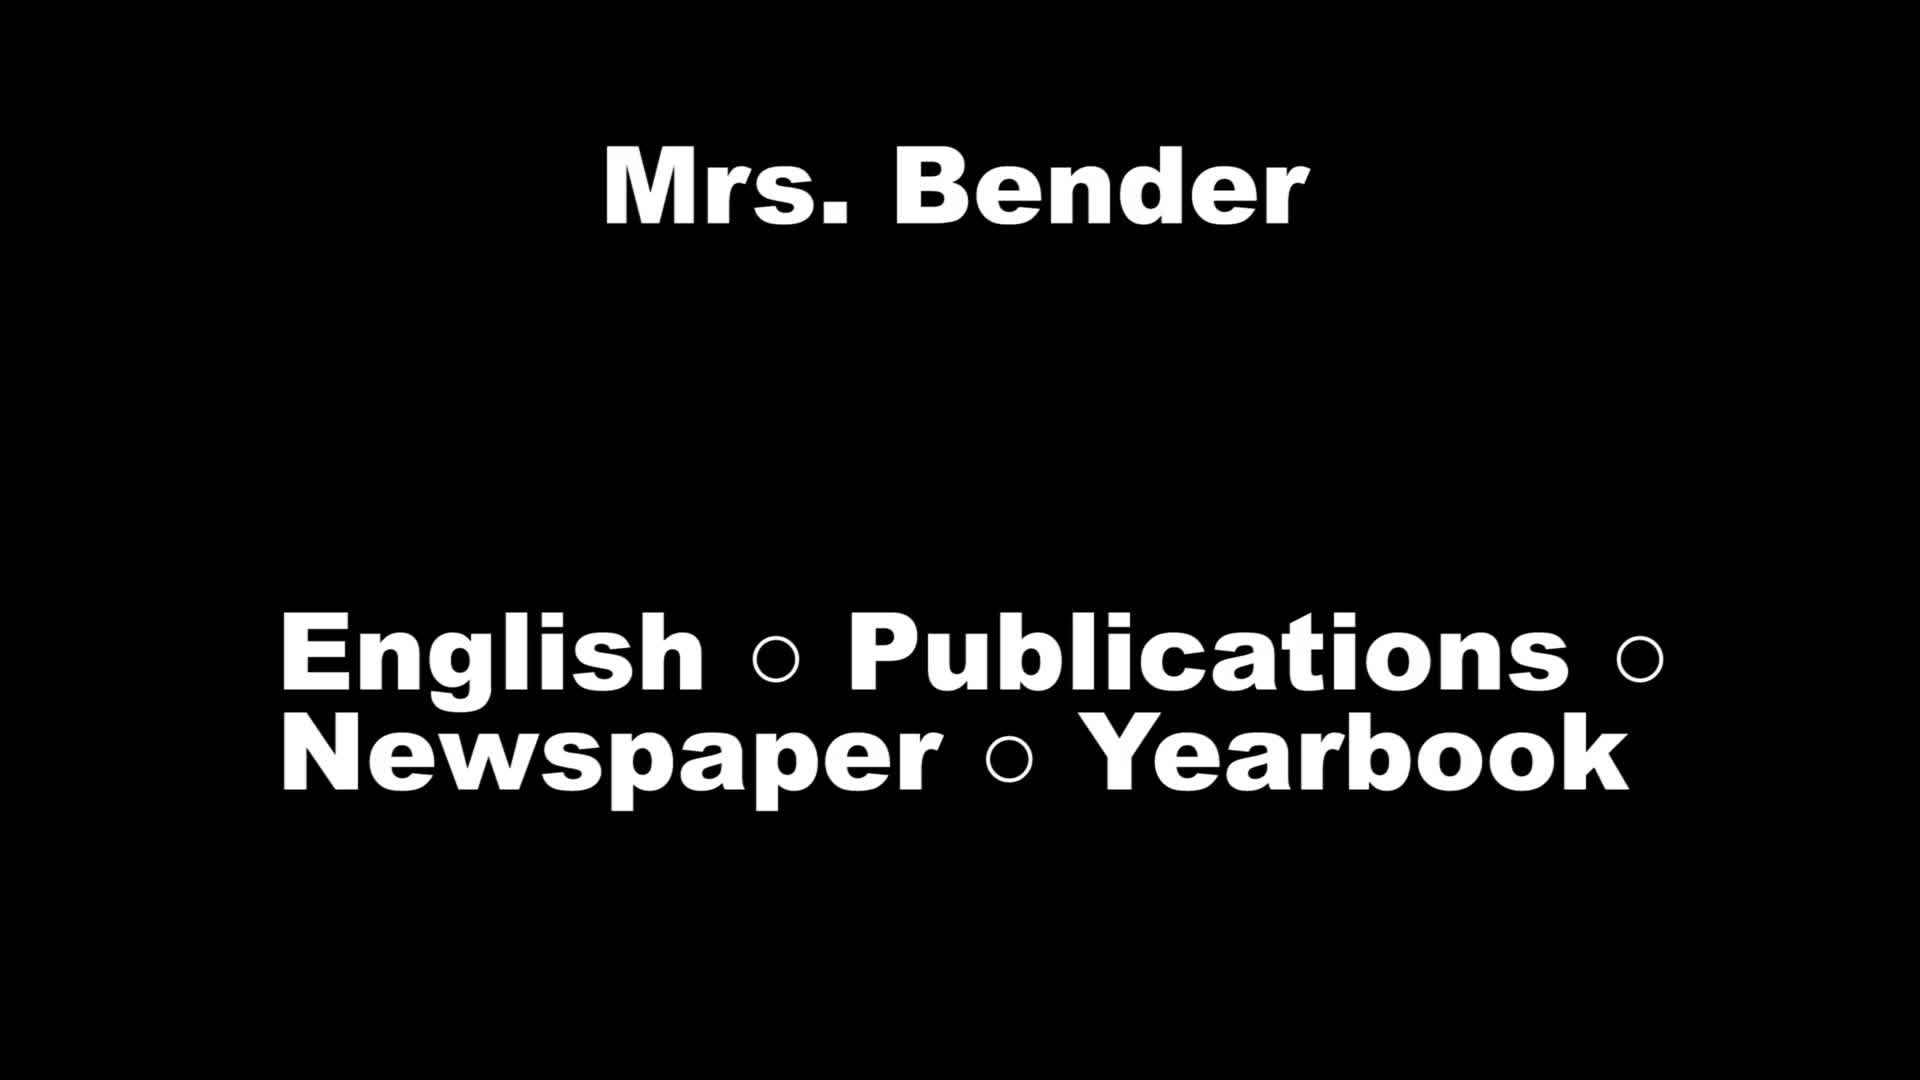 Mrs. Bender Welcome Video